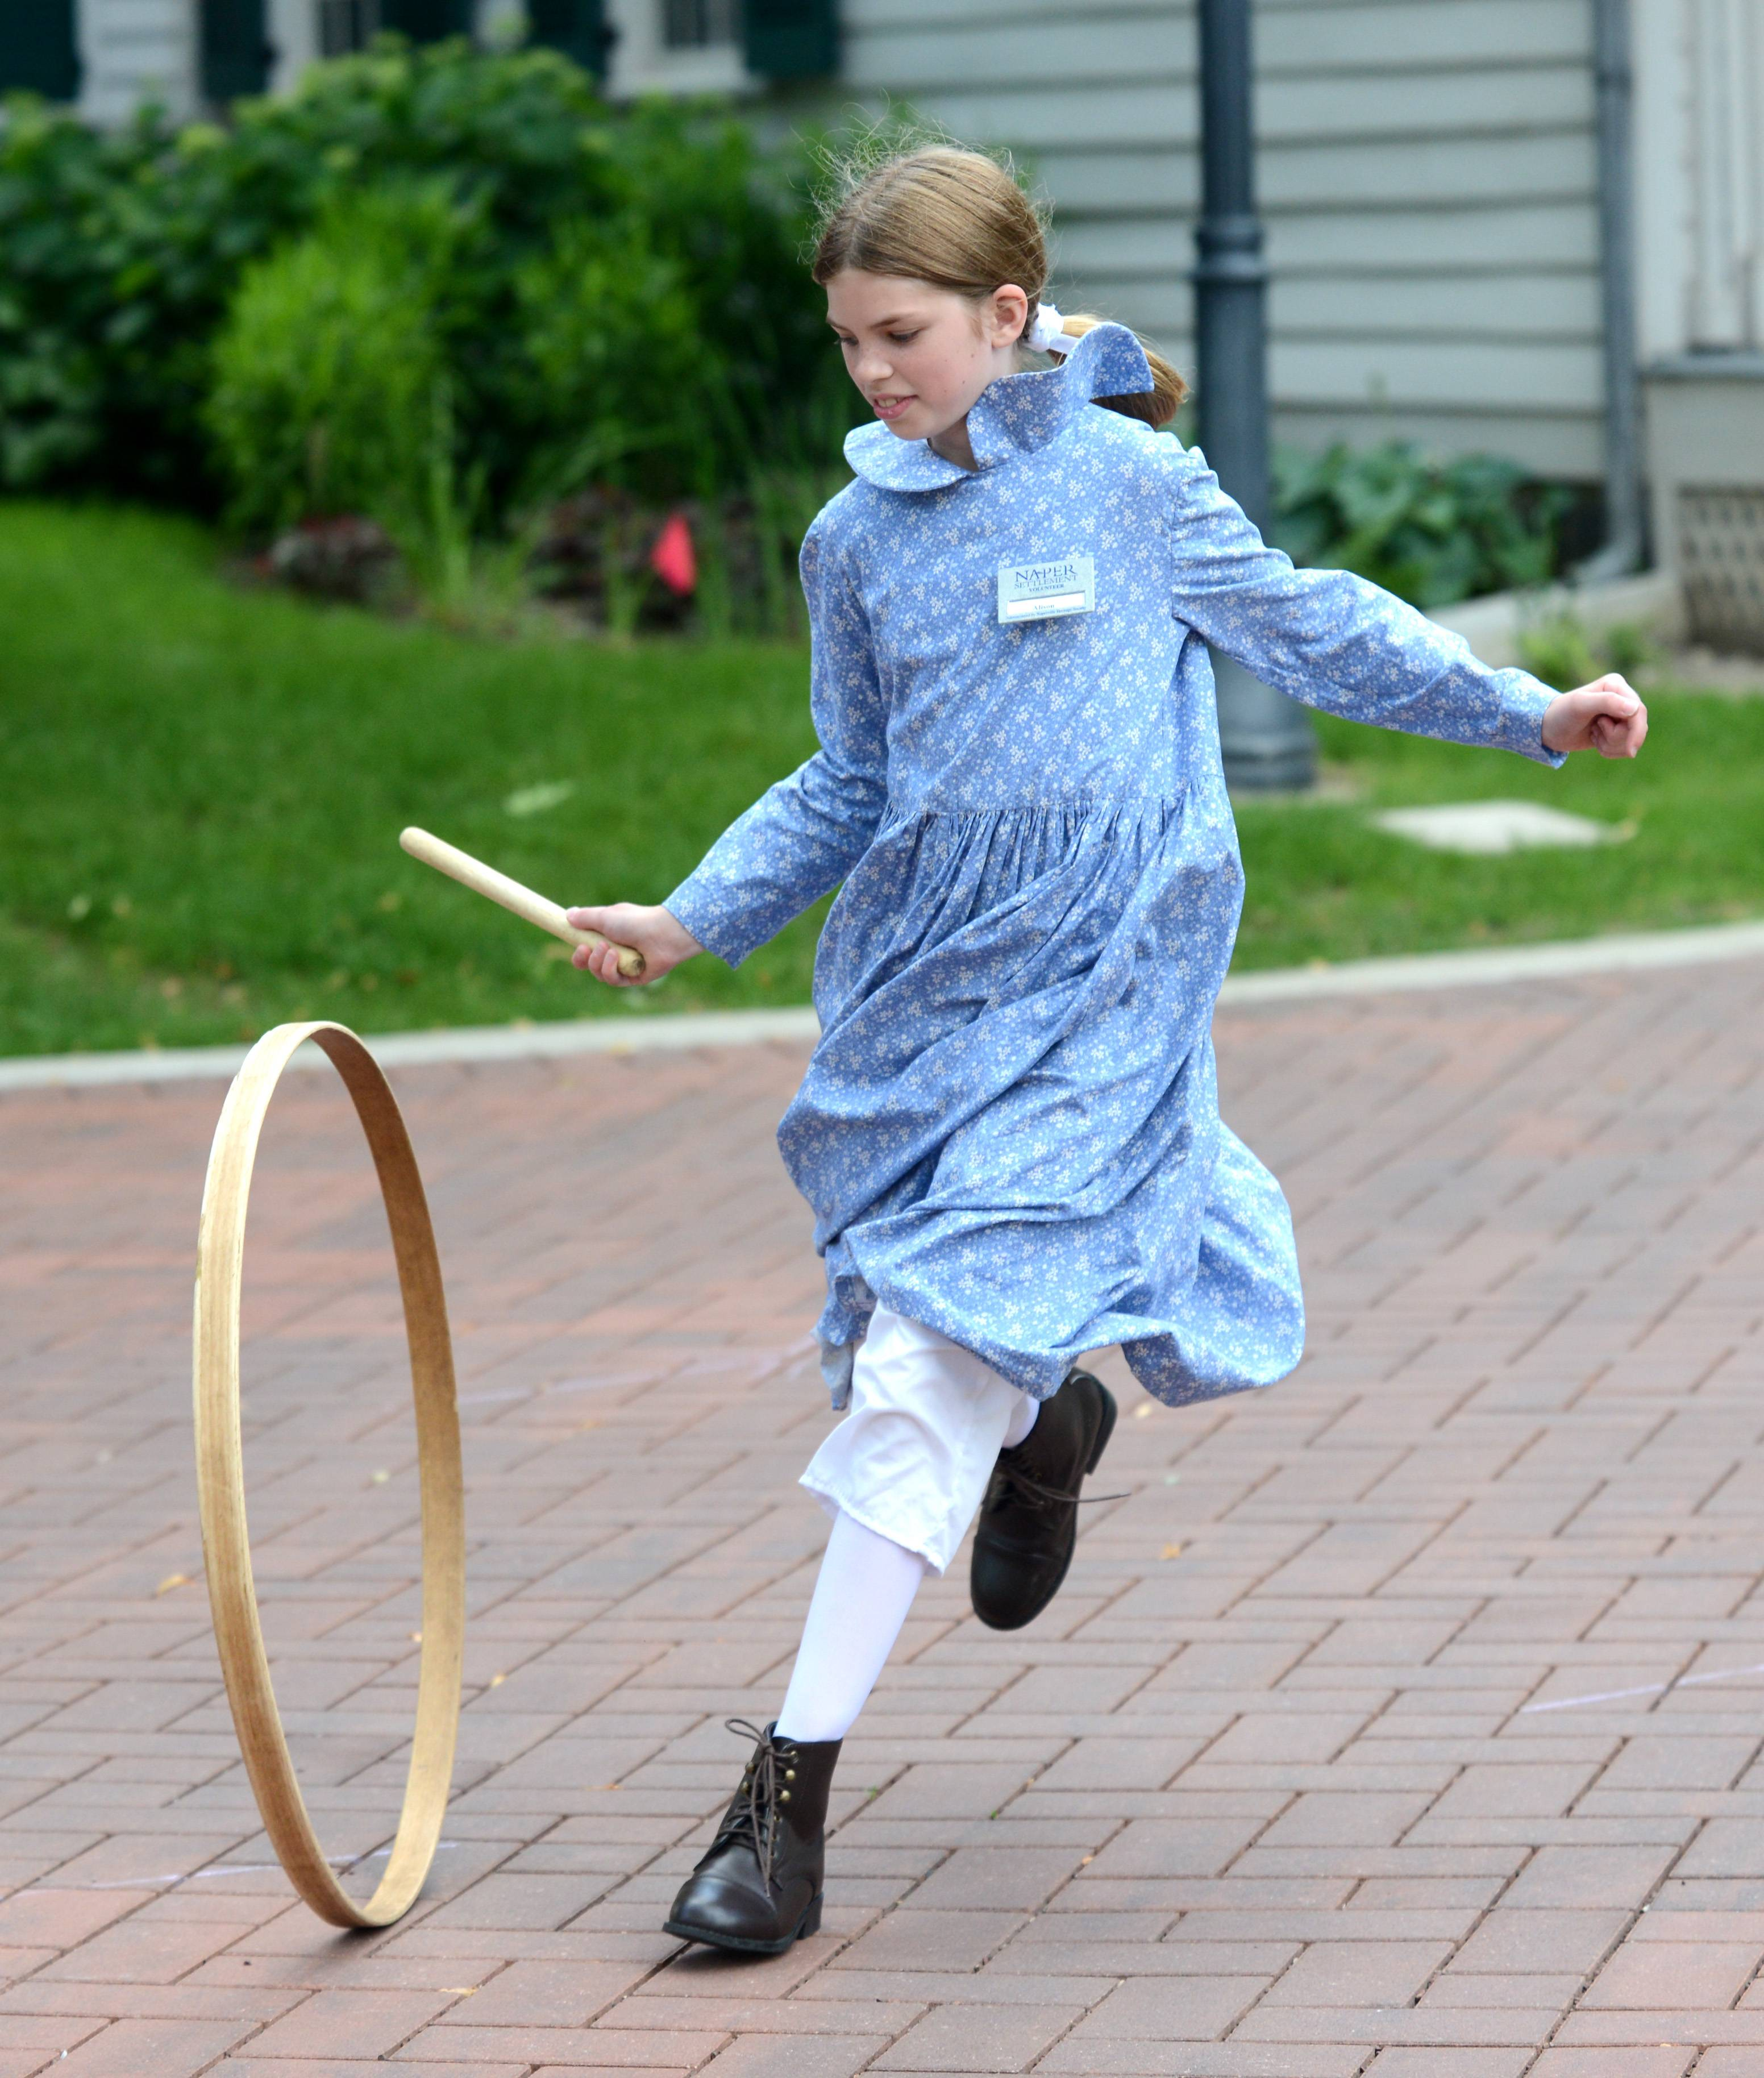 Hoop rolling, and even hula hooping, are among the games families can try during Naperville Plays!, an afternoon of vintage games and outdoor fun planned by Naper Settlement and DuPage Children's Museum.